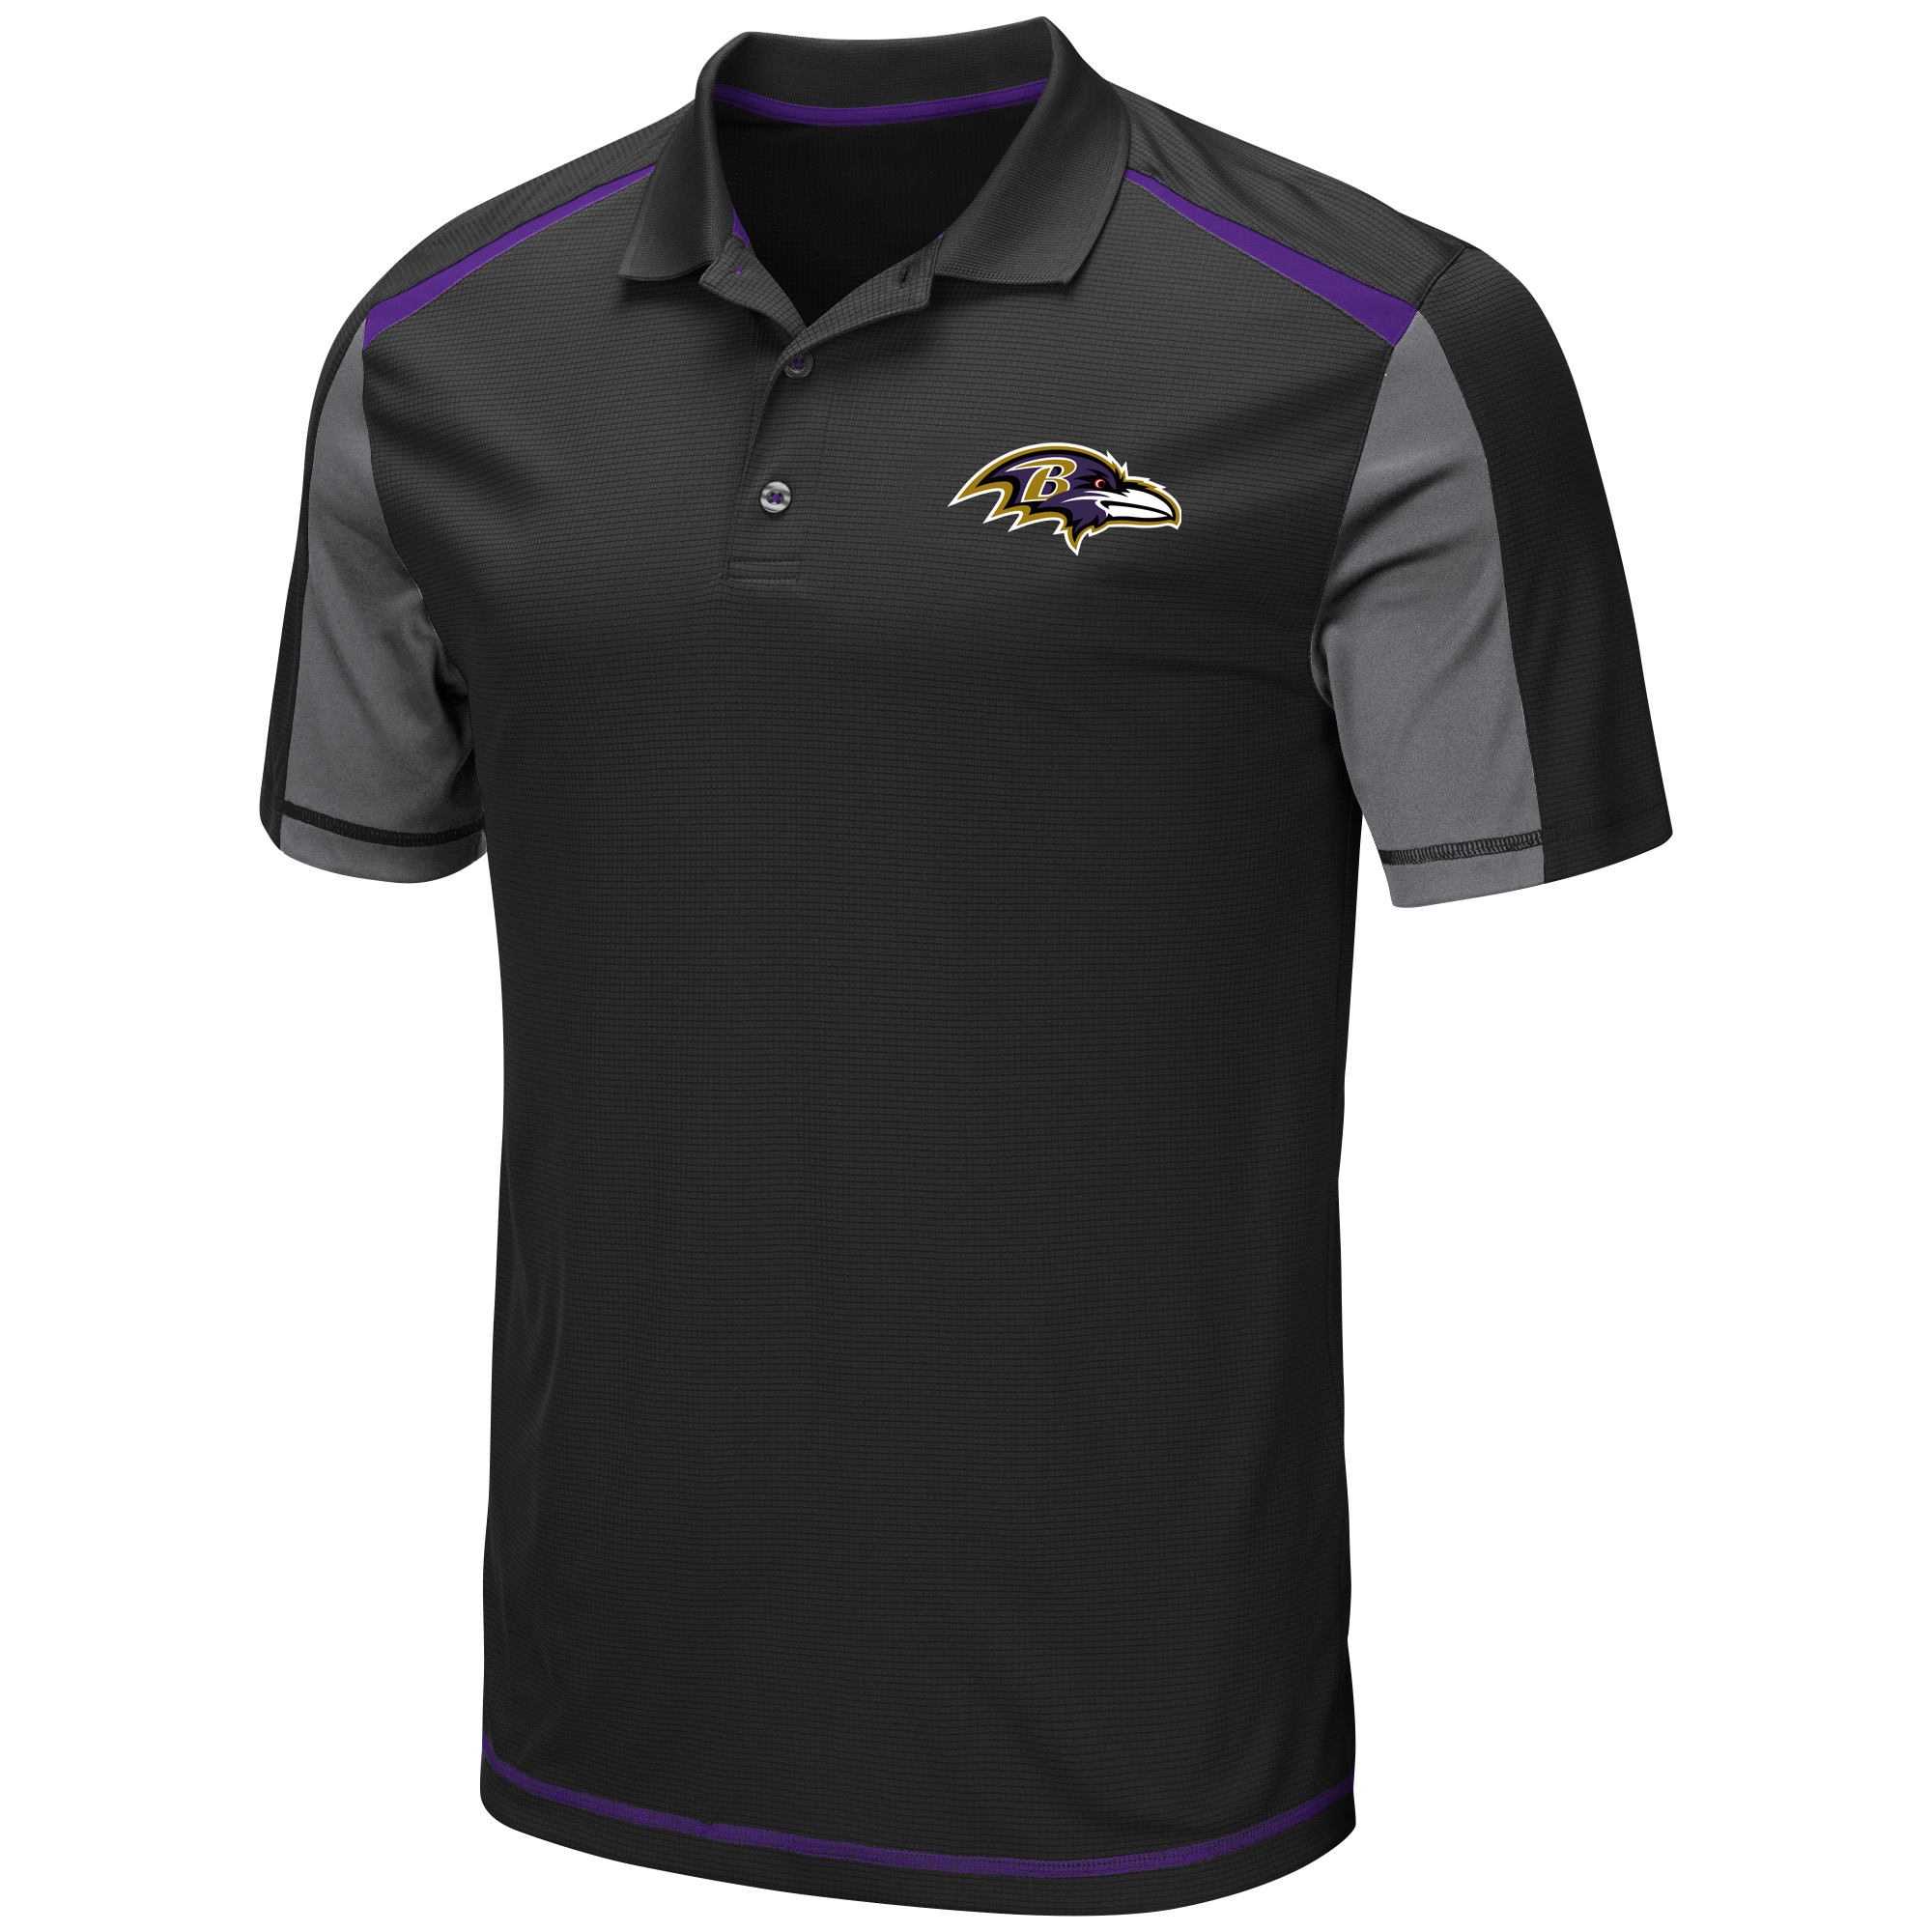 Men's Majestic Black Baltimore Ravens Draft Prize Polo